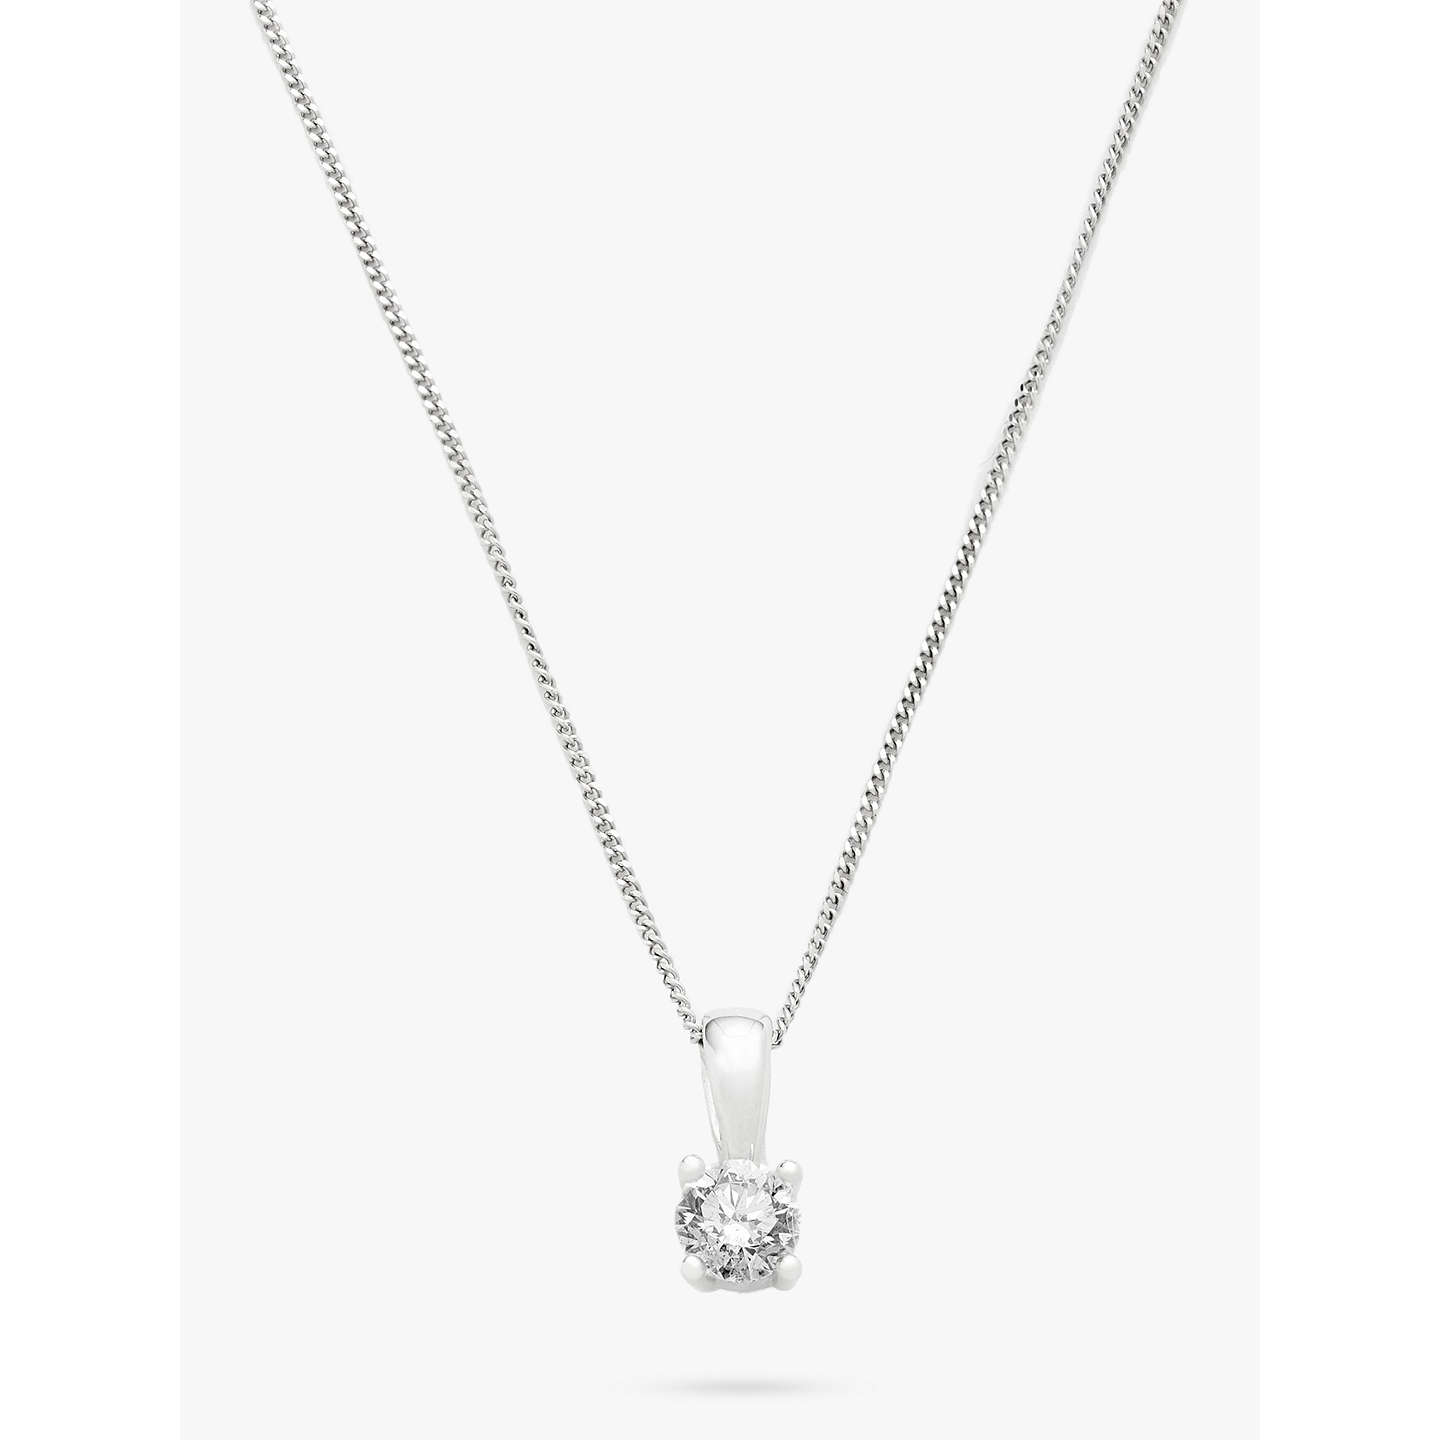 p carat product platinum necklace htm diamond cut round brilliant